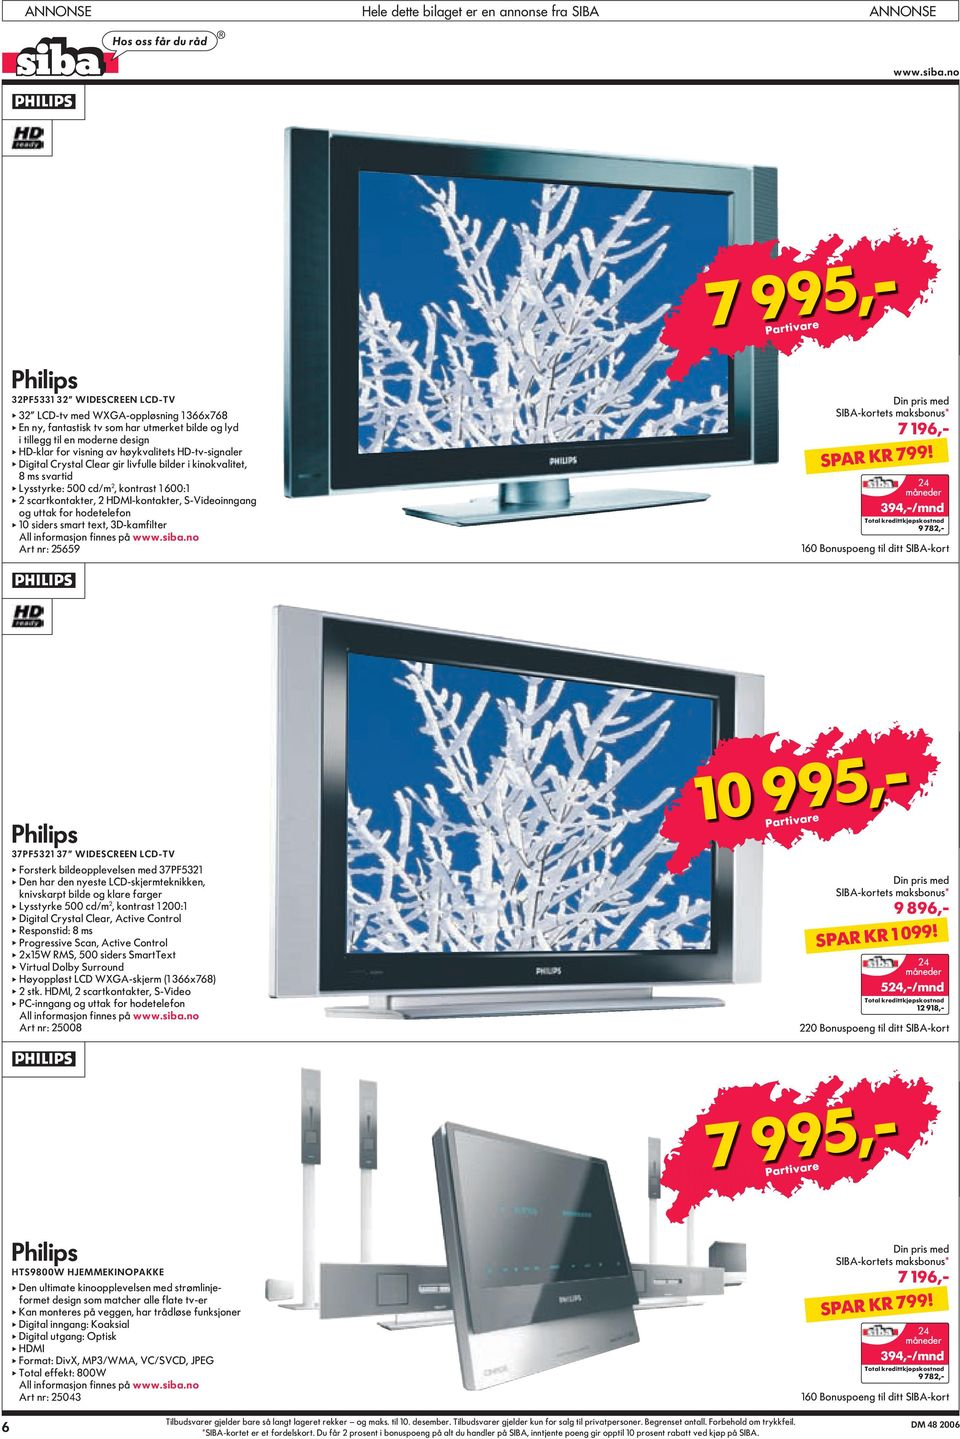 HDMI-kontakter, S-Videoinngang og uttak for hodetelefon apple 10 siders smart text, 3D-kamfilter Art nr: 25659 7 196,- SPAR KR 799!